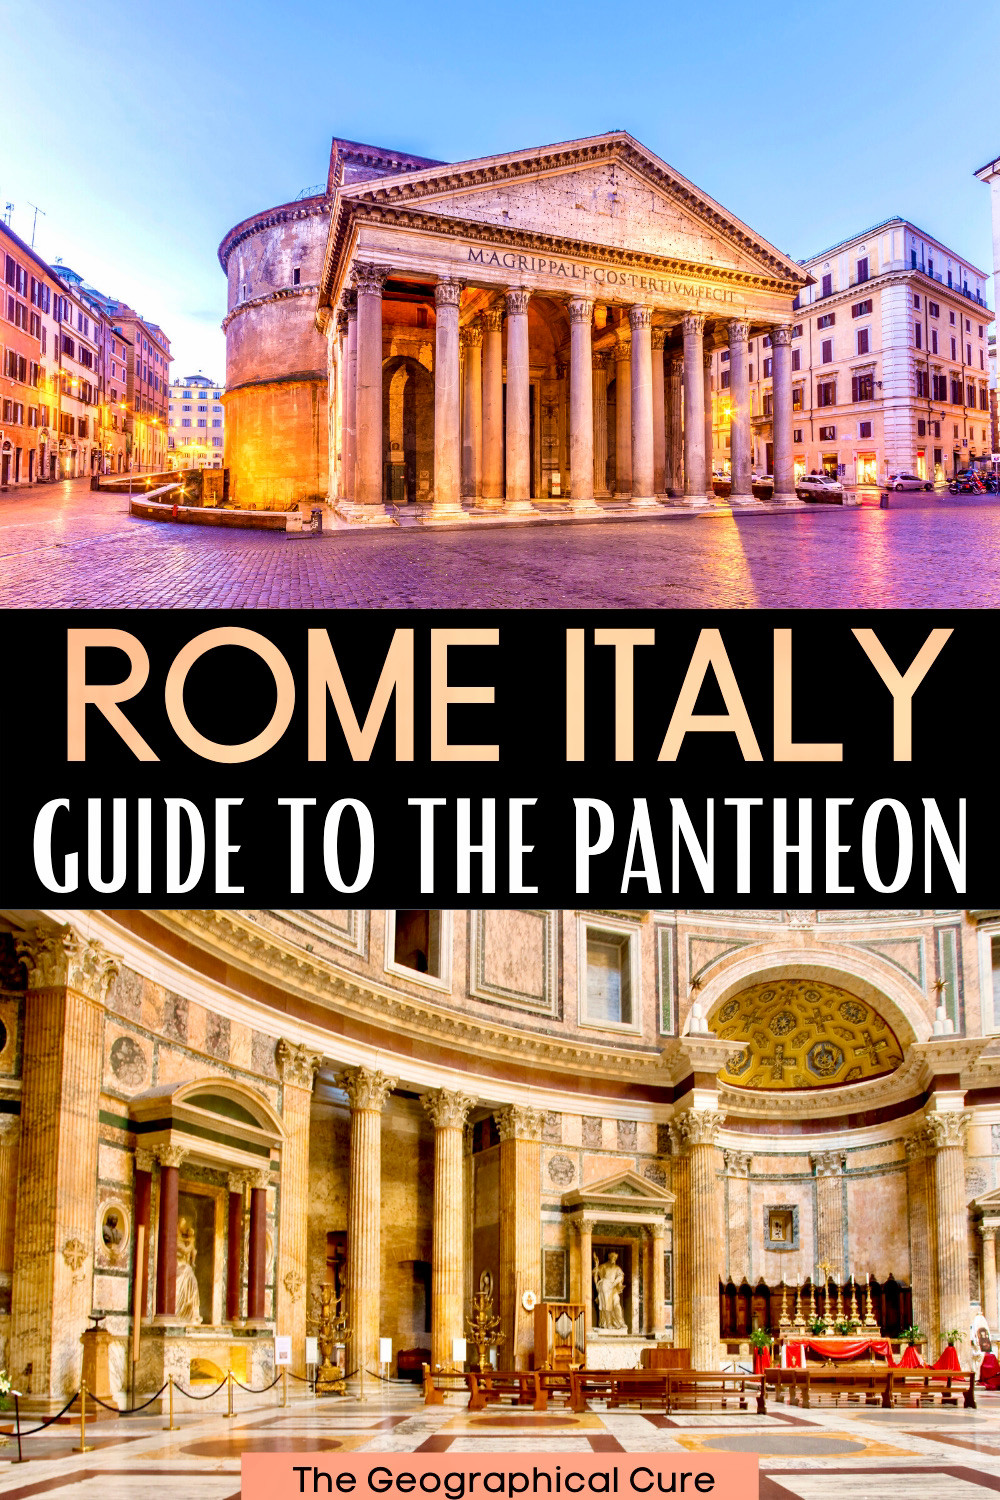 ultimate guide to the Pantheon, a must see attraction in Rome Italy